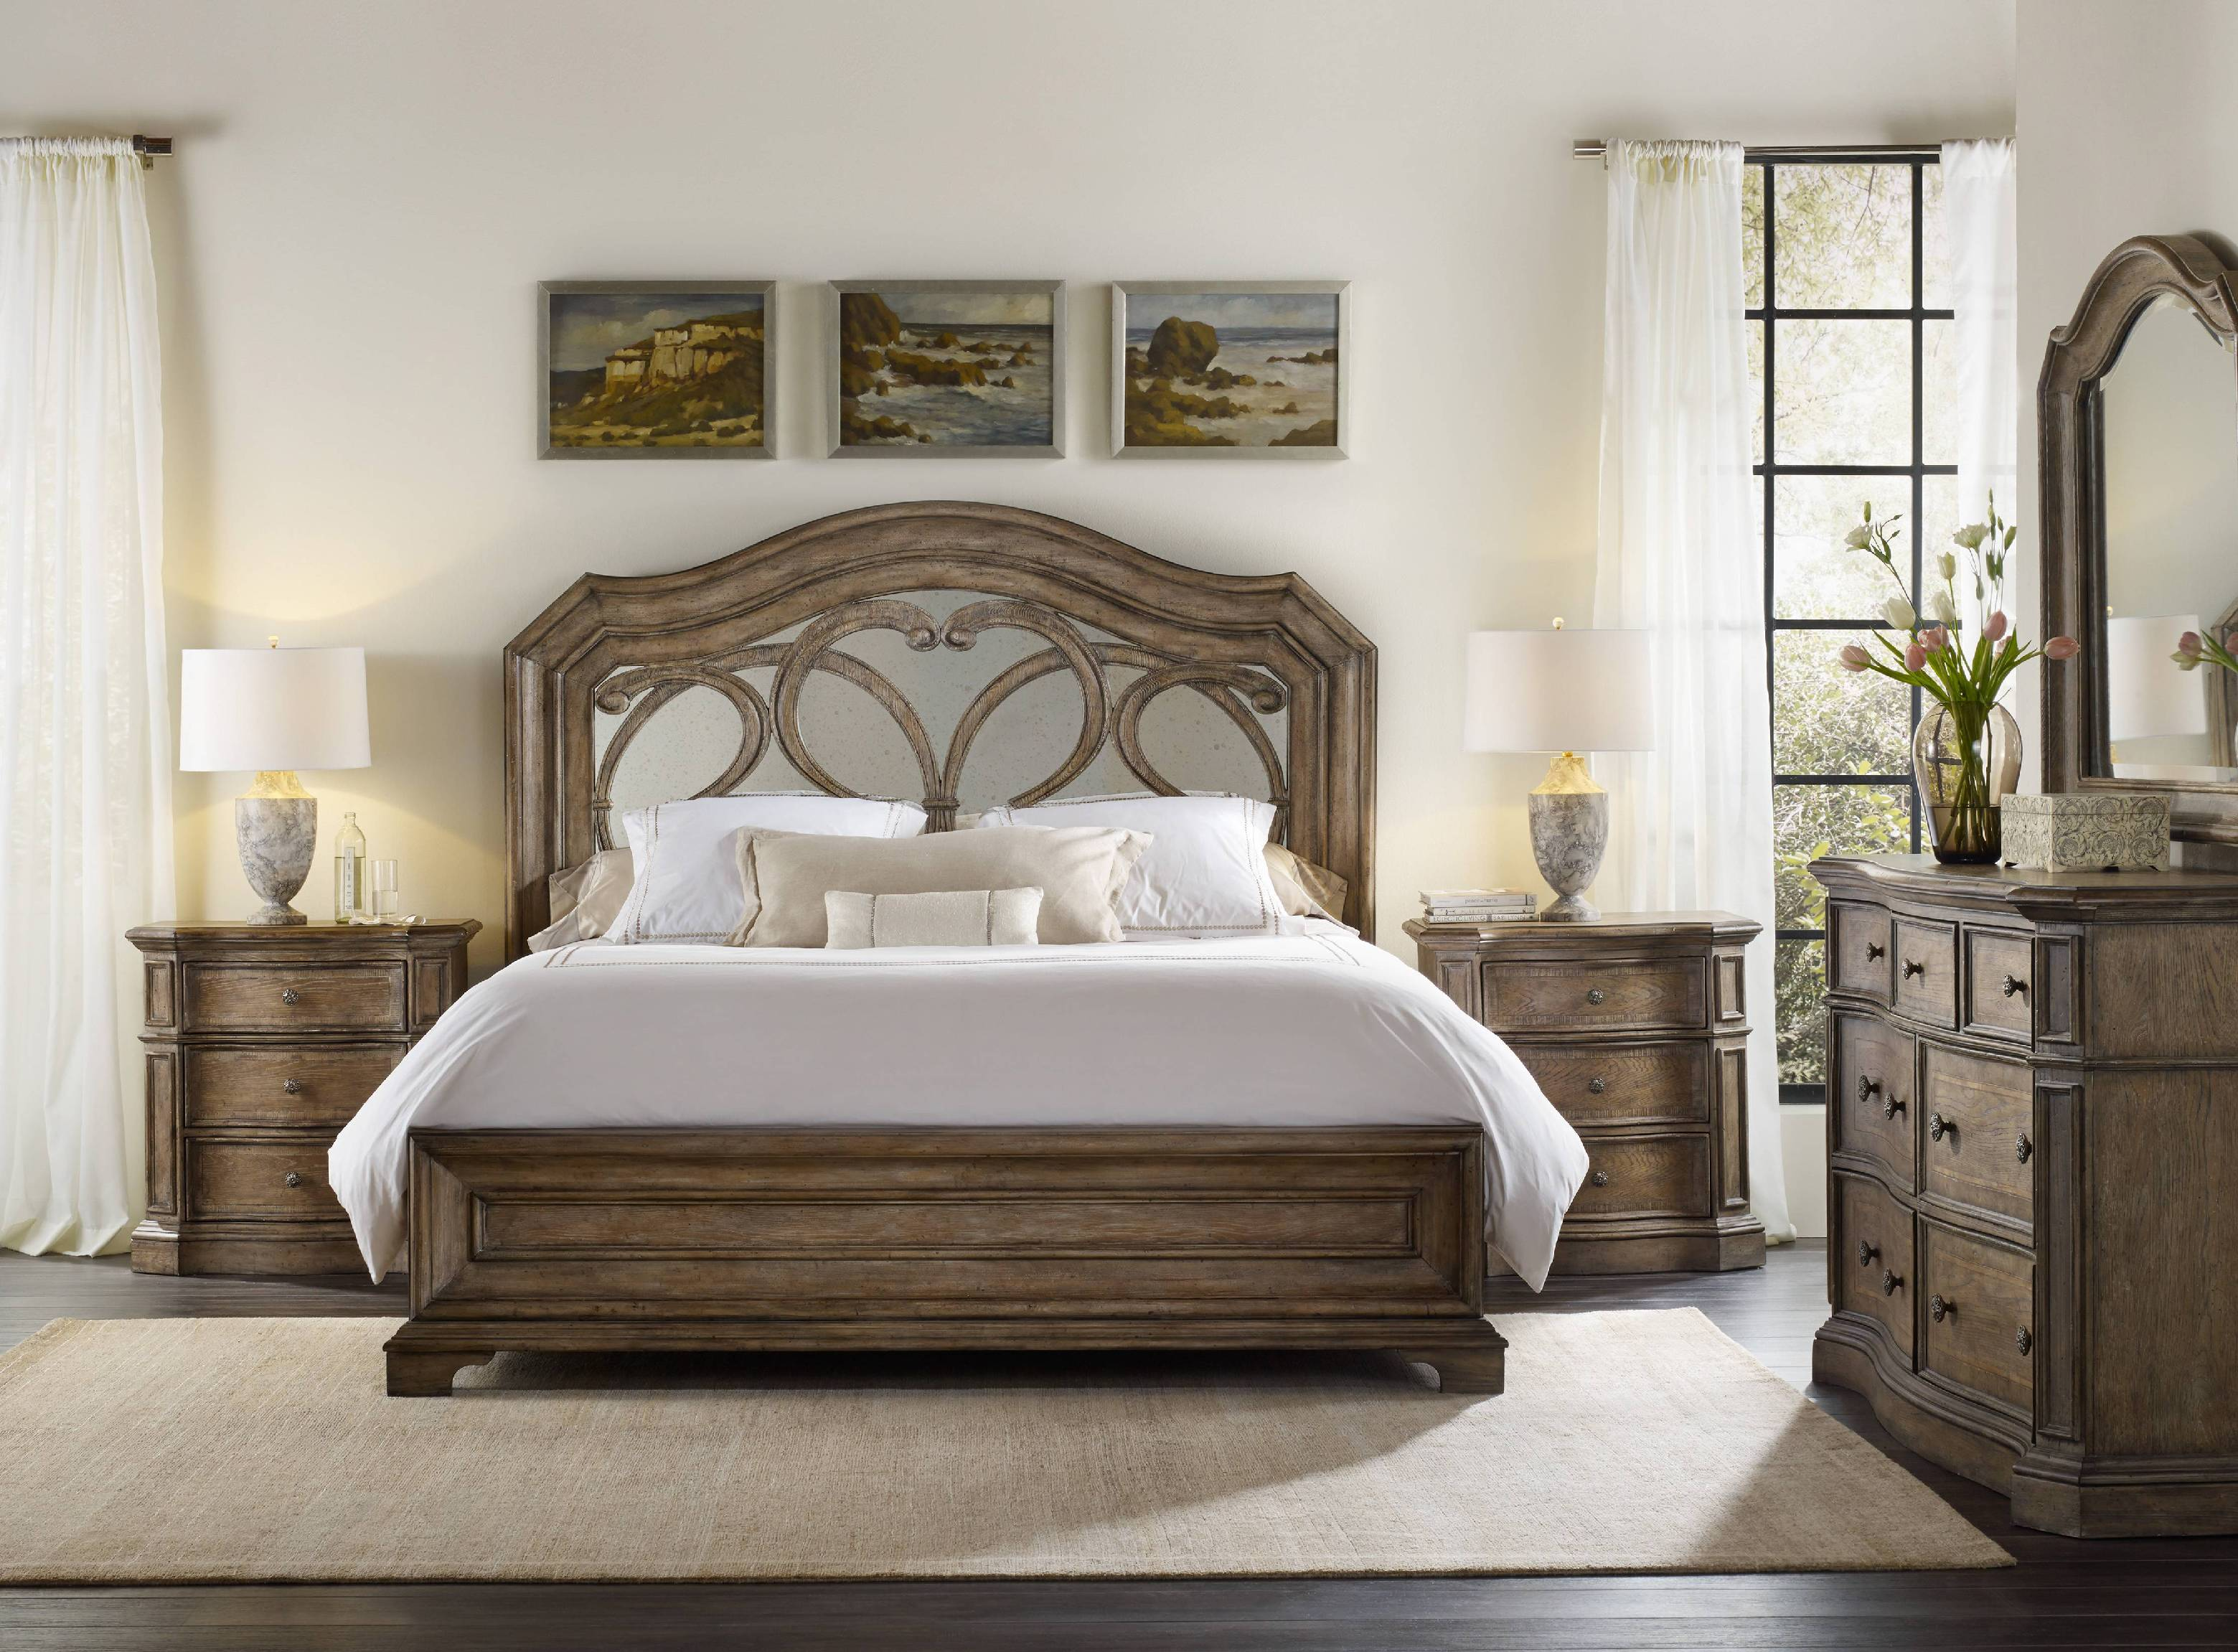 Cool Wooden Dillards Bedroom Furniture With Bed Frame Double Side Tables  And Cabinet. Amazing Dillards Bedroom Furniture   HomesFeed